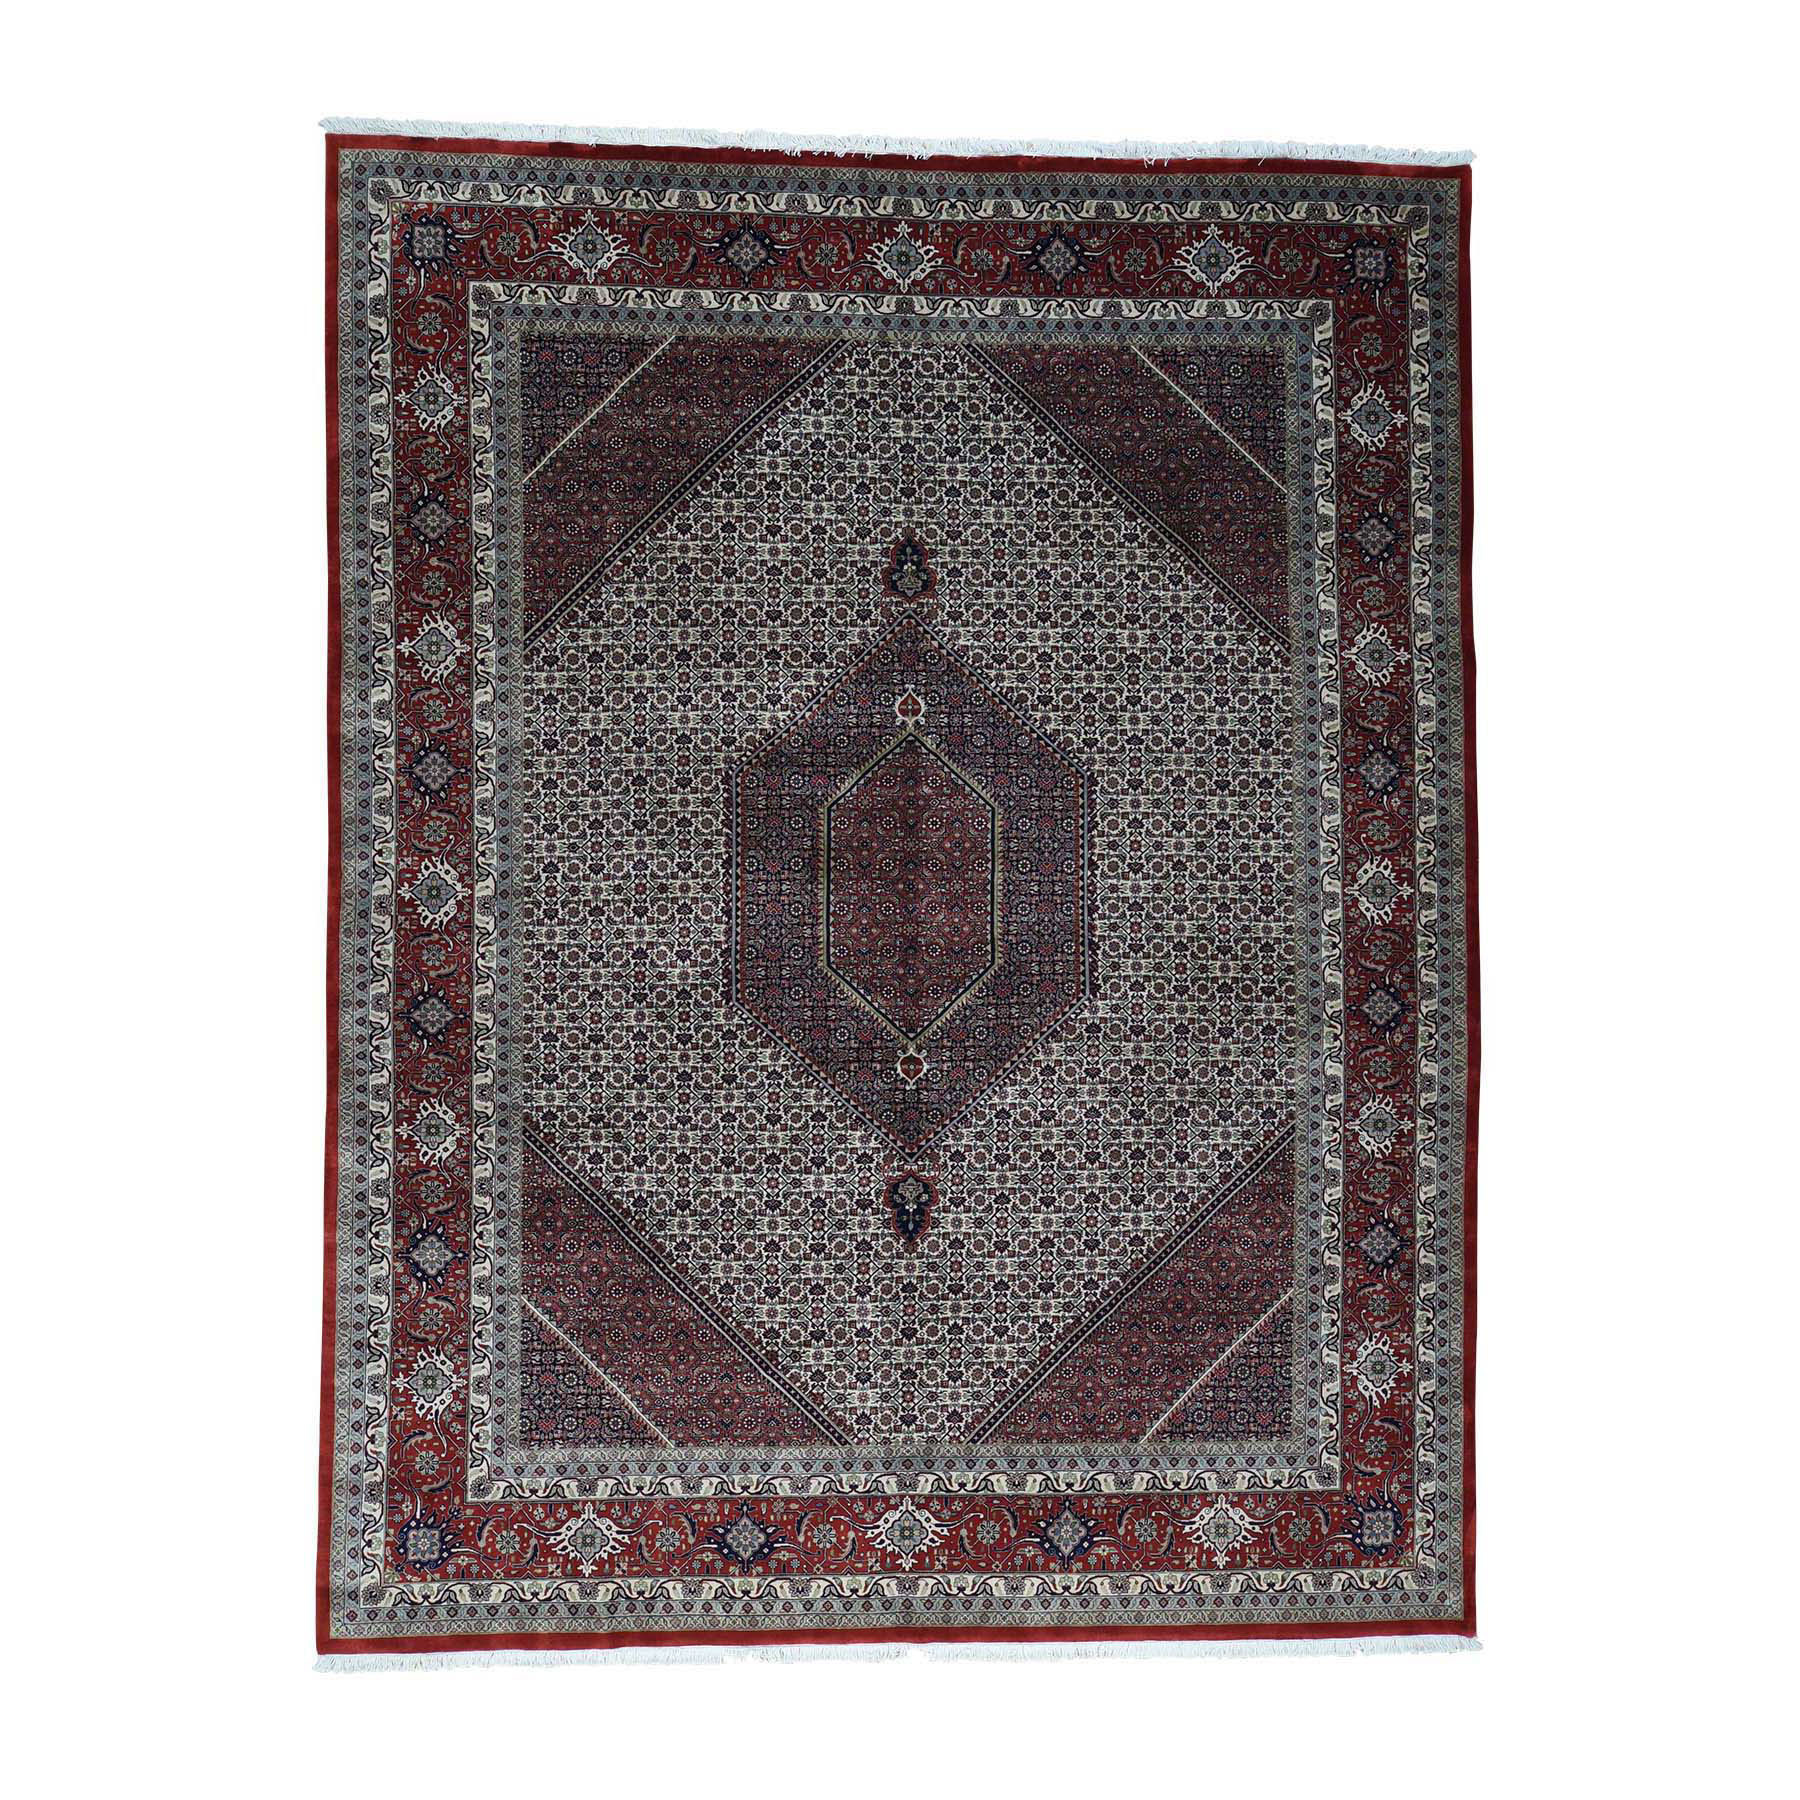 10'x13' New Zealand Wool and Silk Bijar 300 Kpsi Handmade Oriental Rug